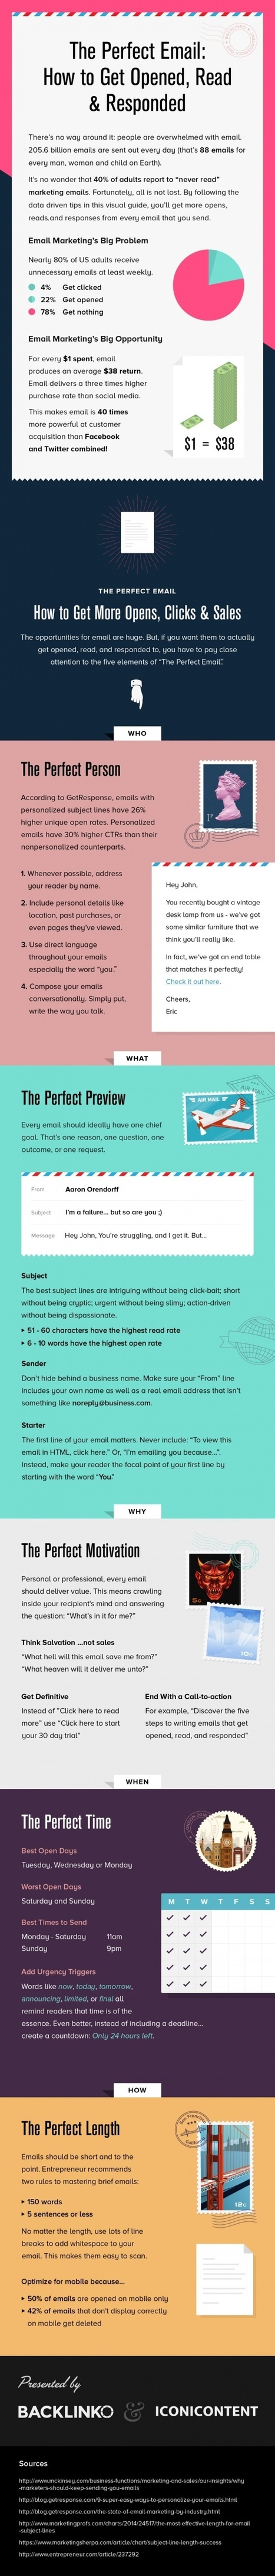 How to Write an Email That Gets Opened, Read, and Responded to [Infographic] | Integrated Brand Communications | Scoop.it